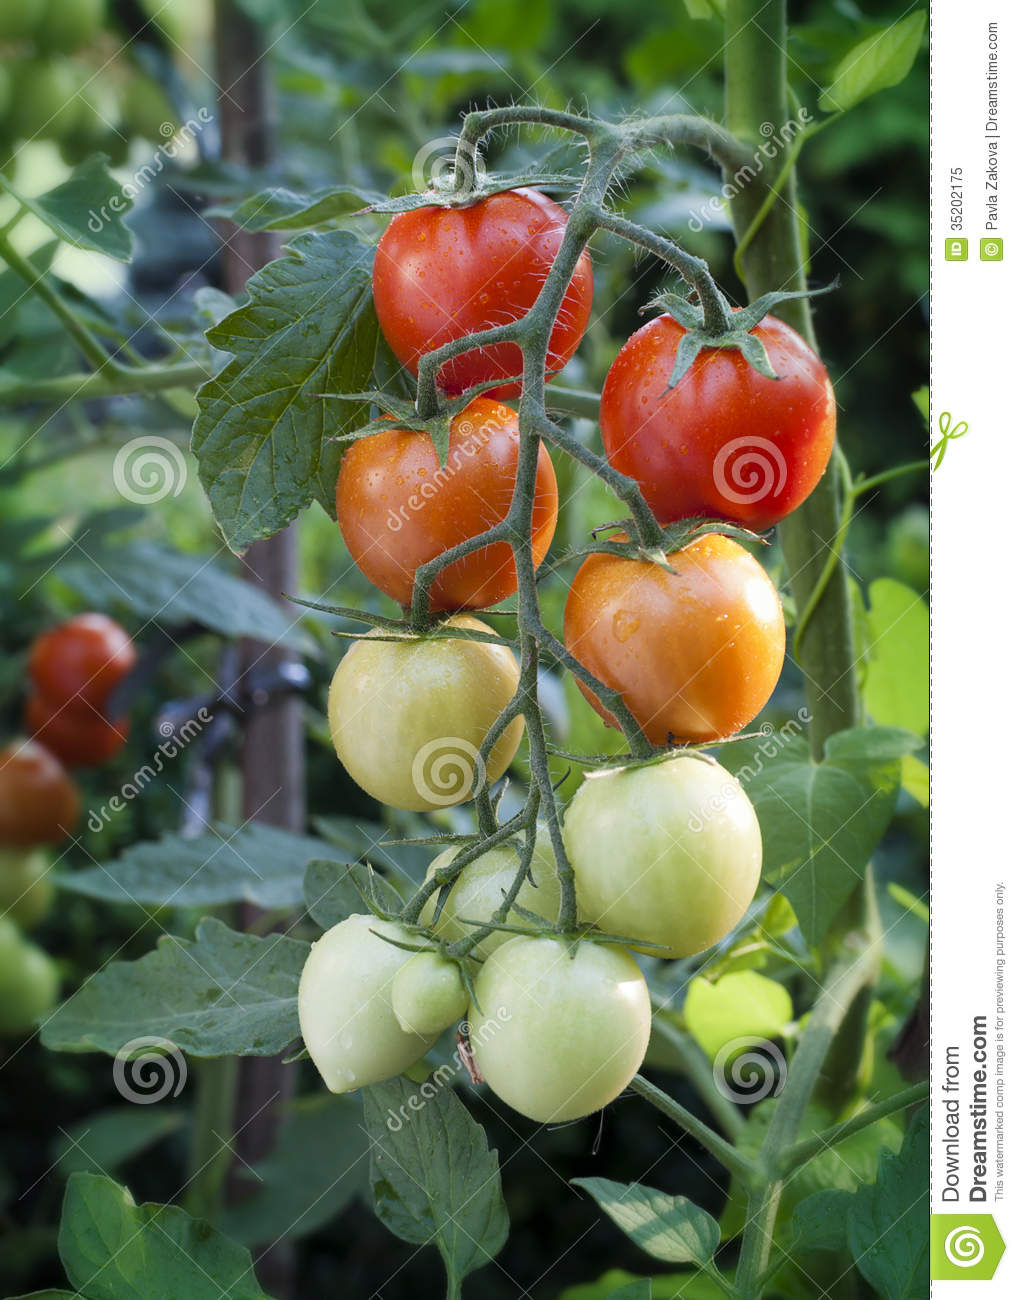 how to grow tomatoes in ontario